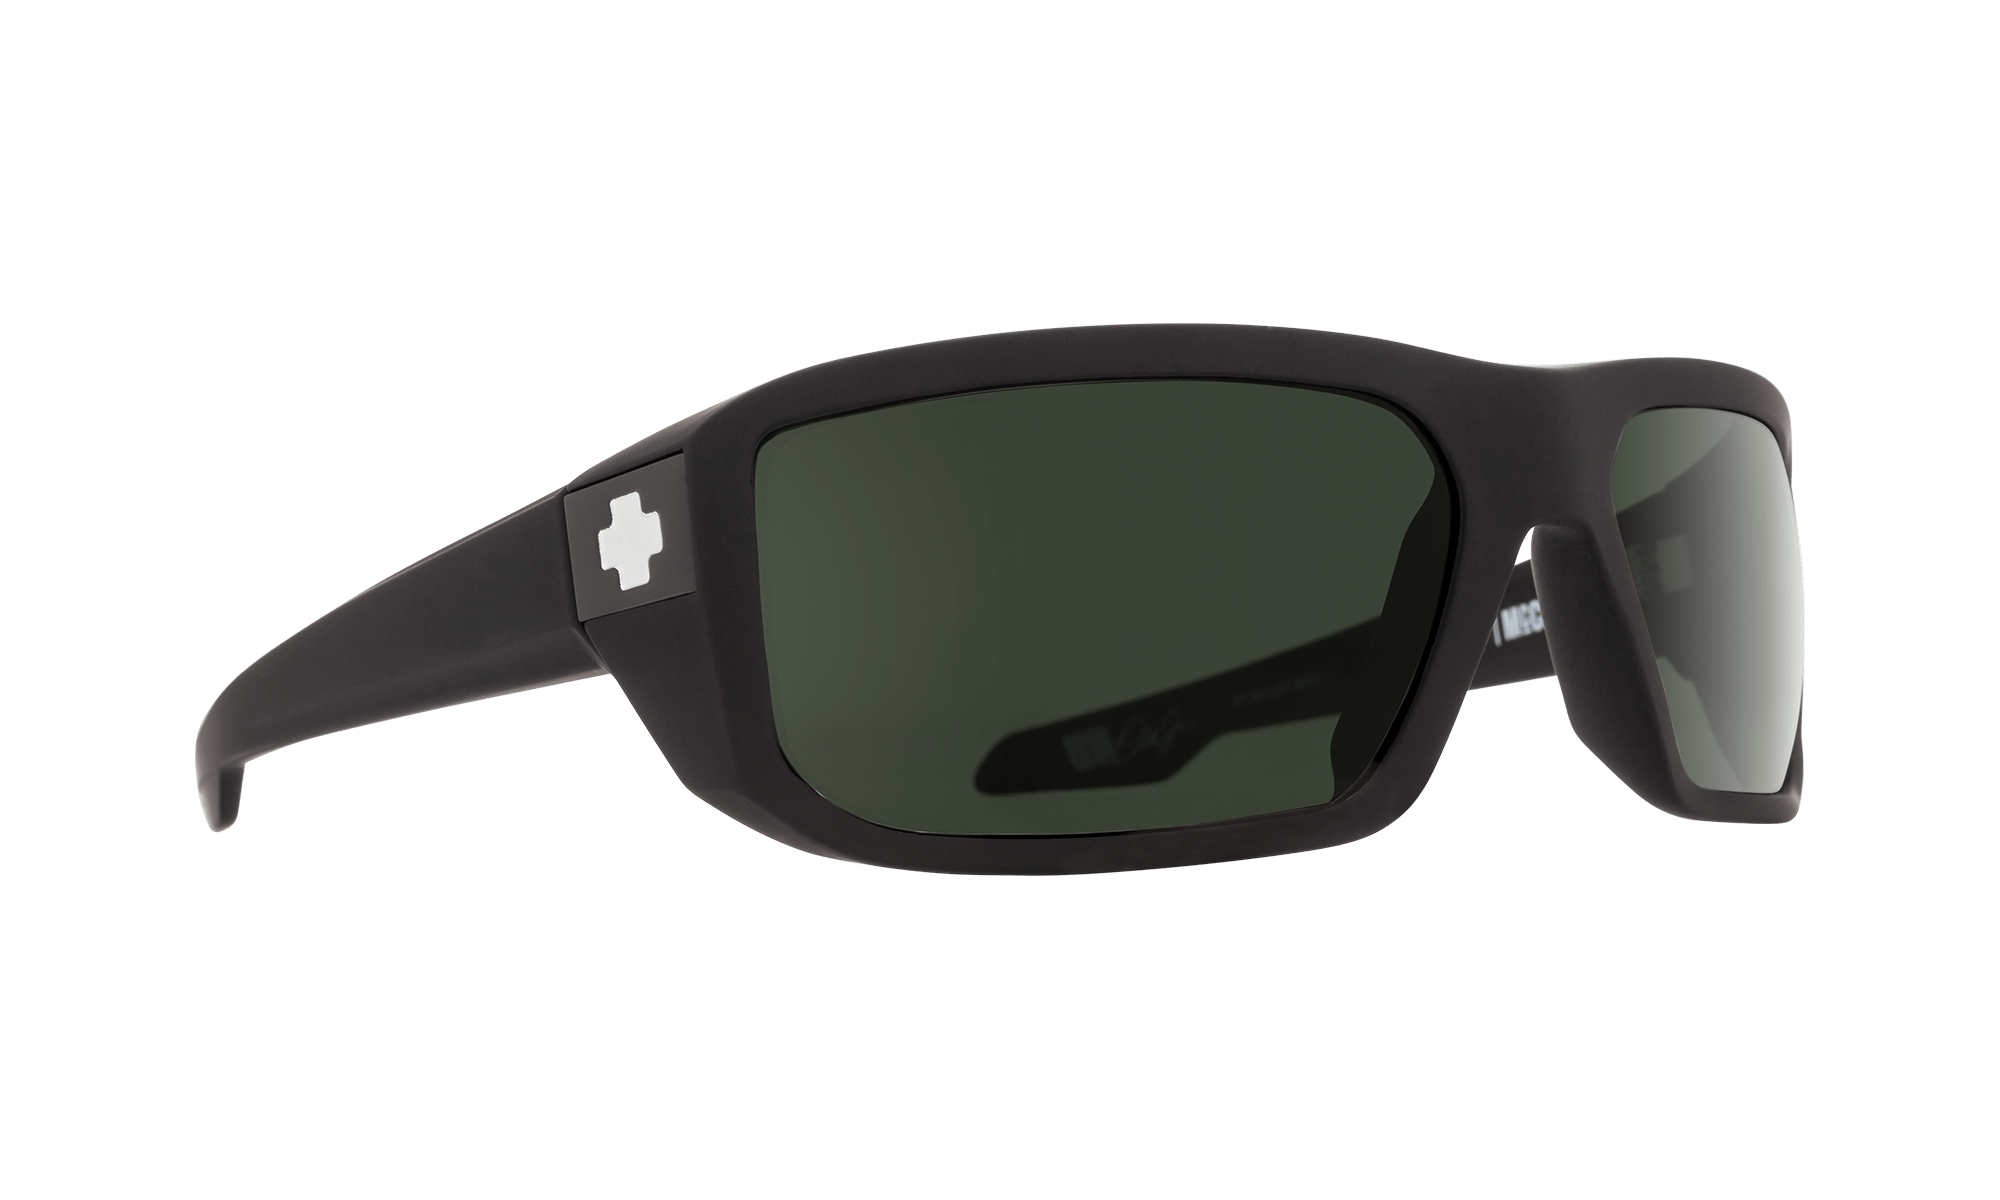 SPY McCoy  Sunglasses  Happy Gray Green  63-17-120